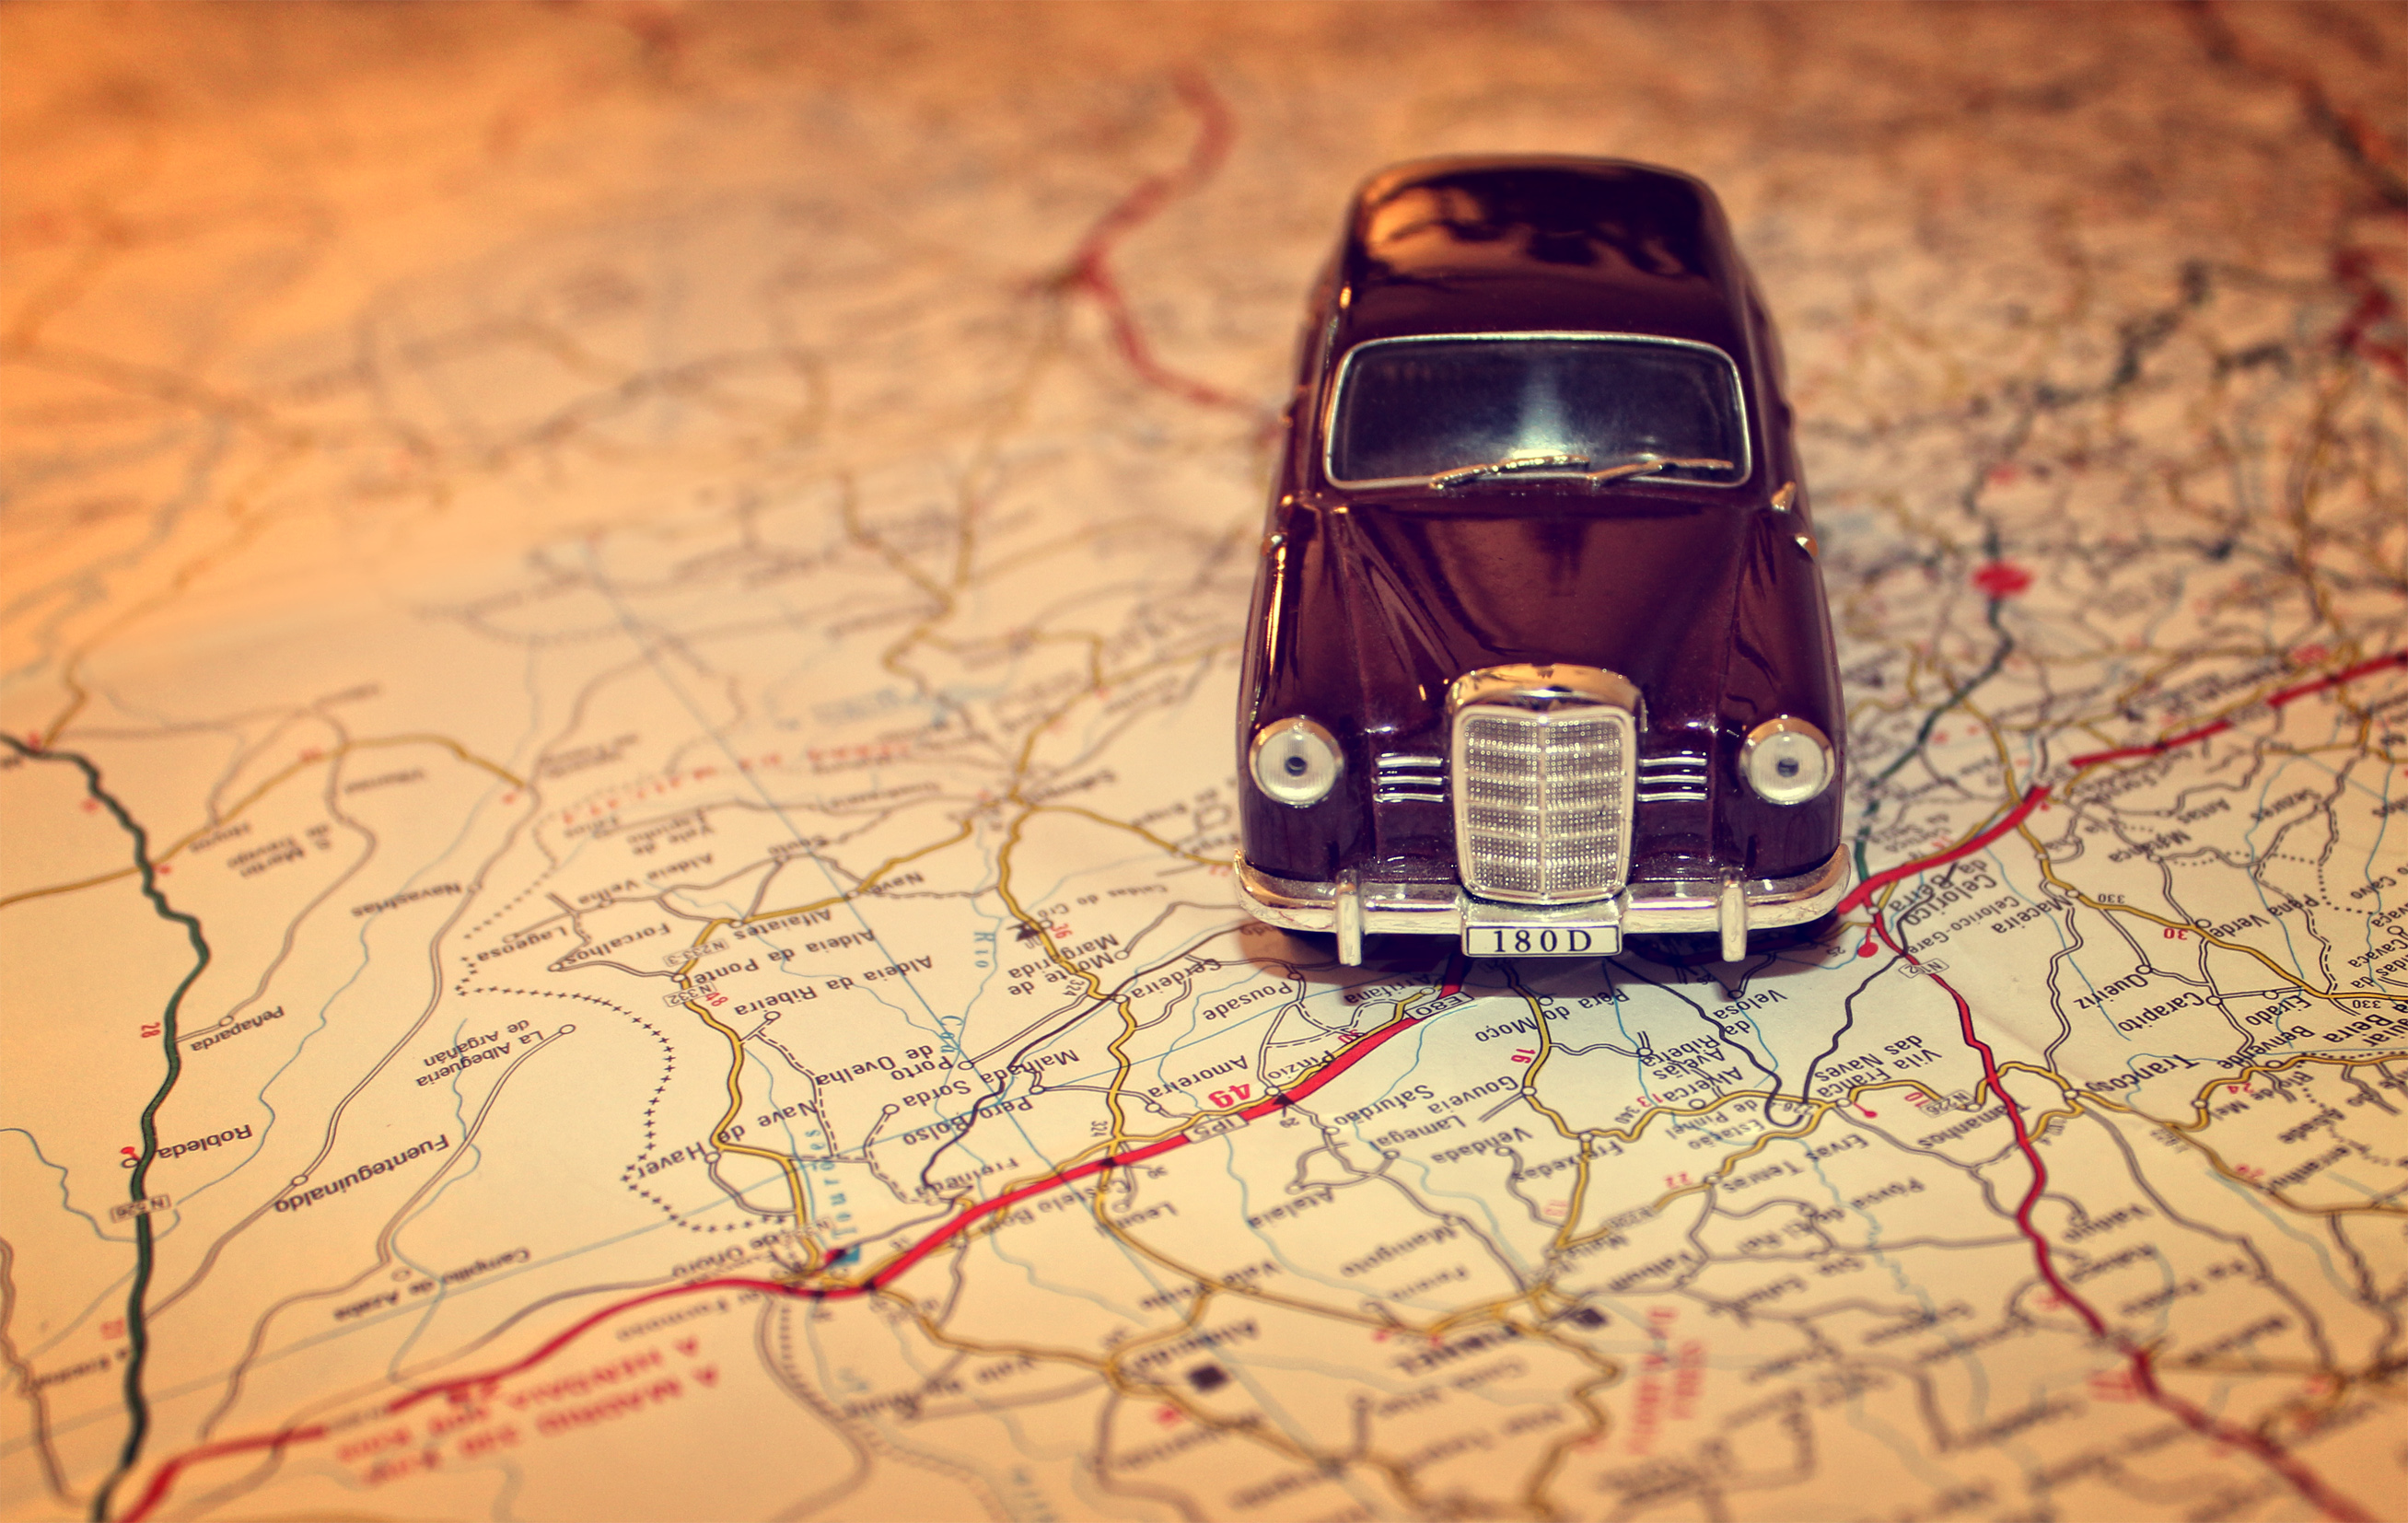 hit the road travel concept with vintage miniature car on road map